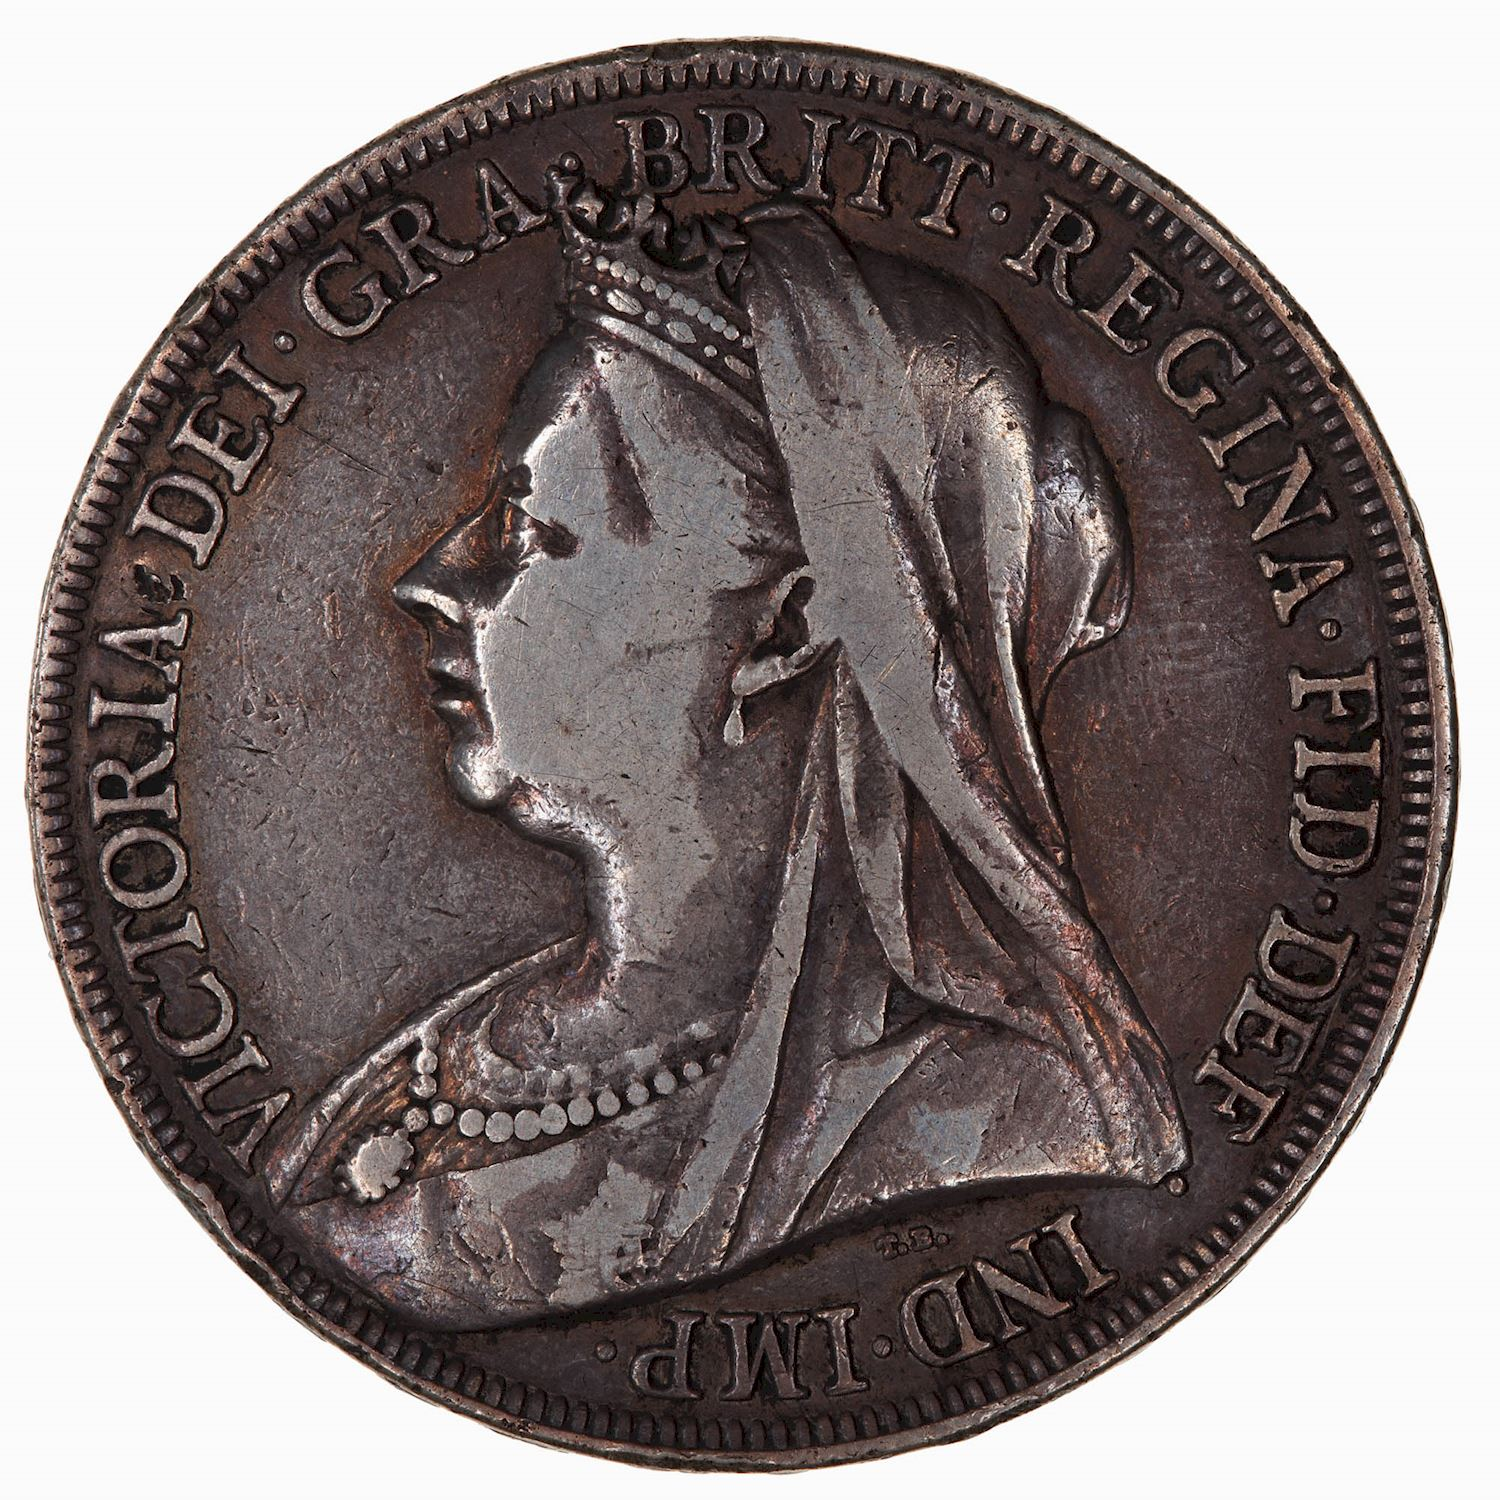 Crown 1898: Photo Coin - Crown, Queen Victoria, Great Britain, 1898